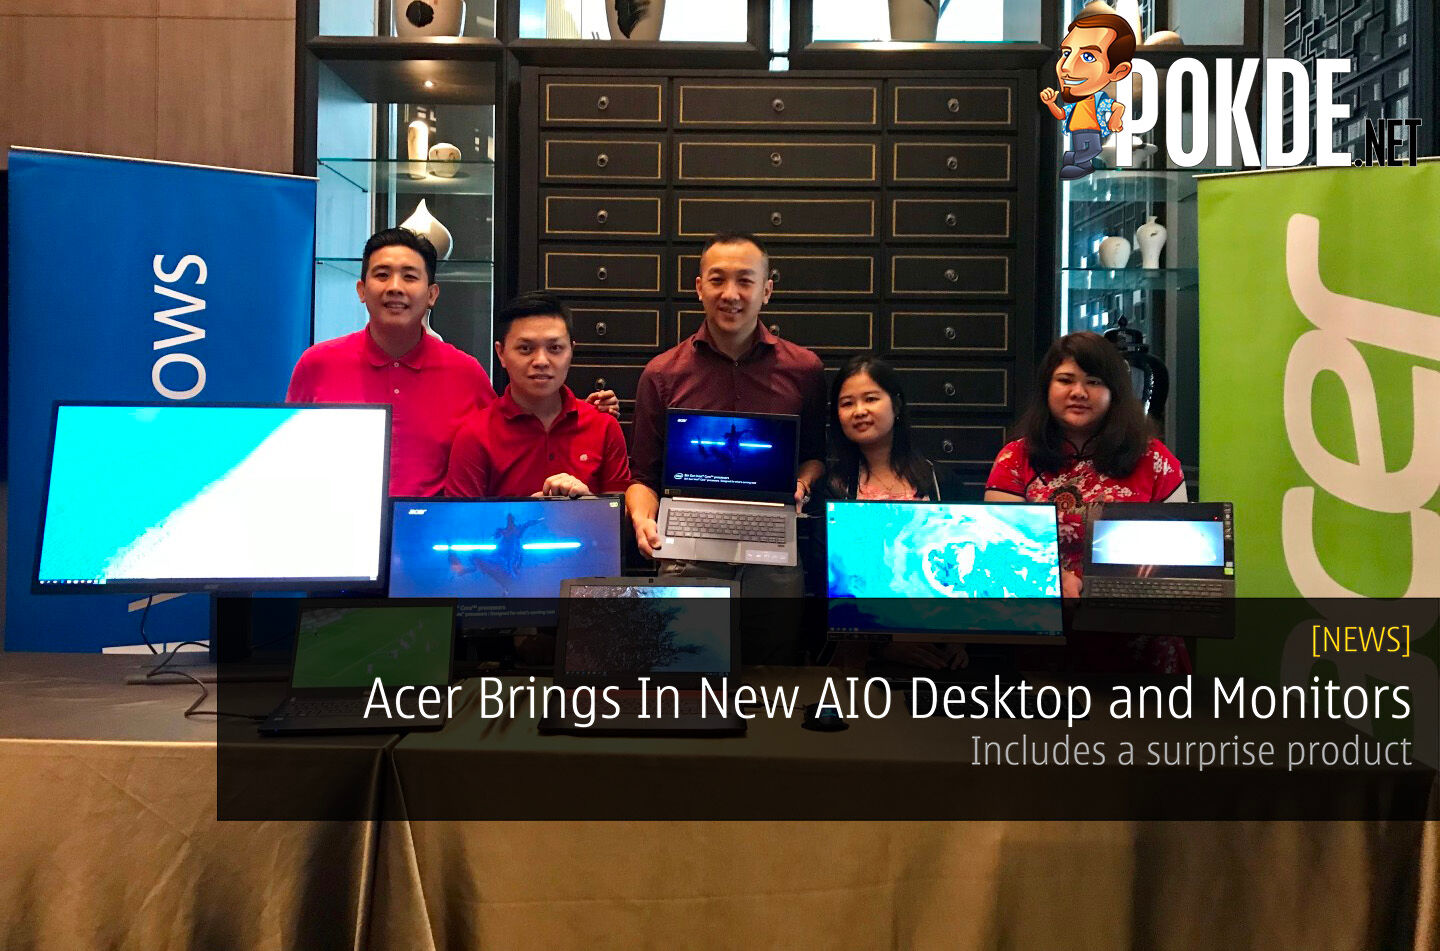 Acer Brings In New AIO Desktop and Monitors - Includes a surprise product 36